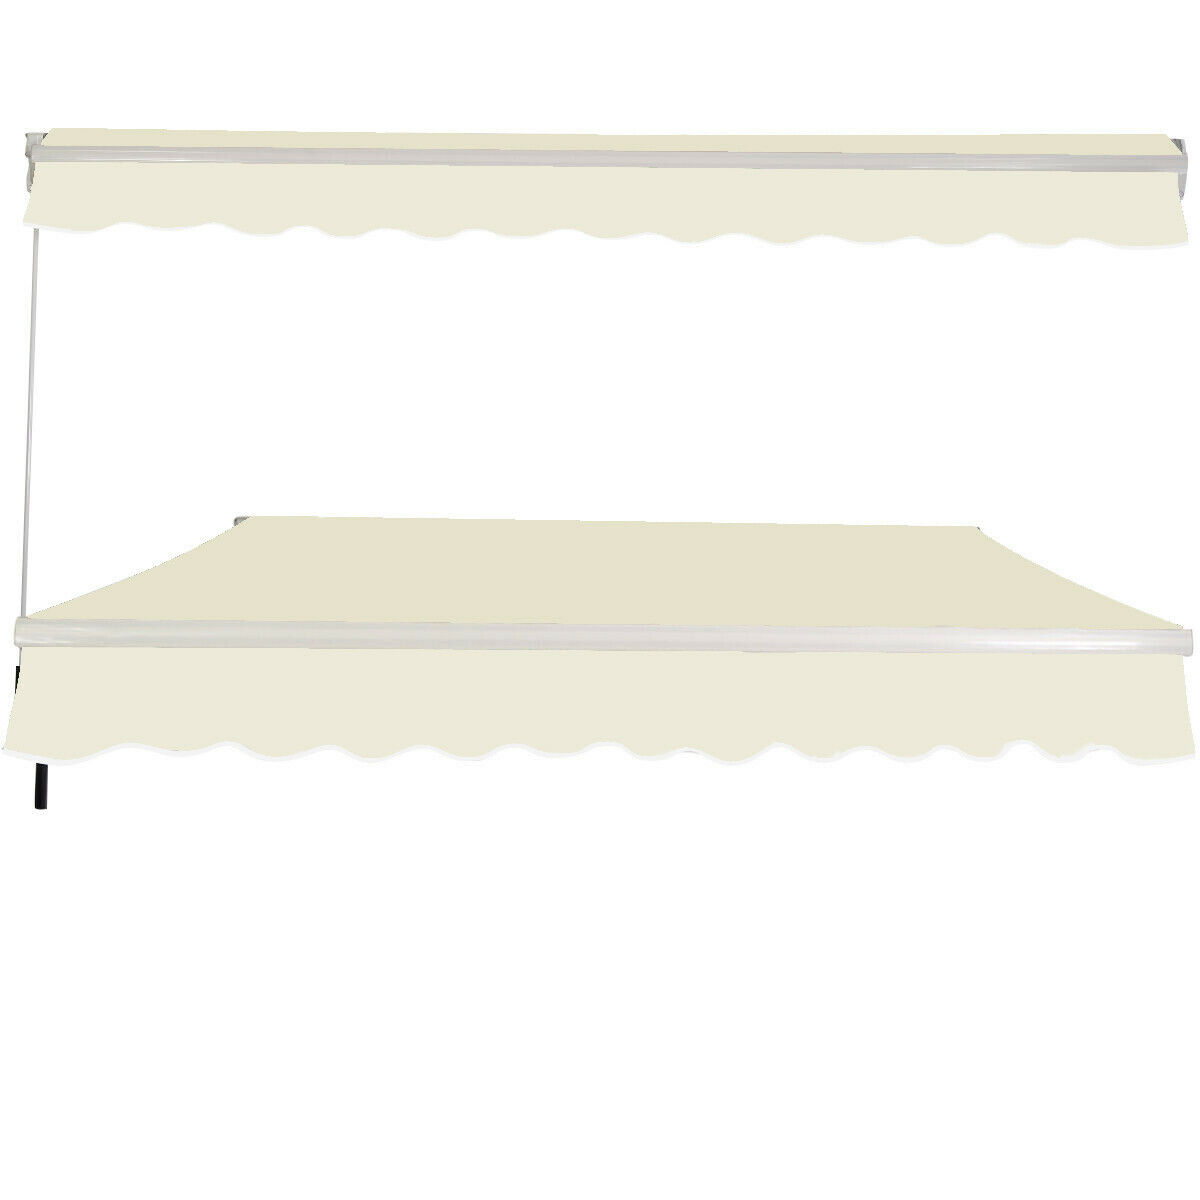 Retractable Manual Awning Canopy Patio Shade Shelter